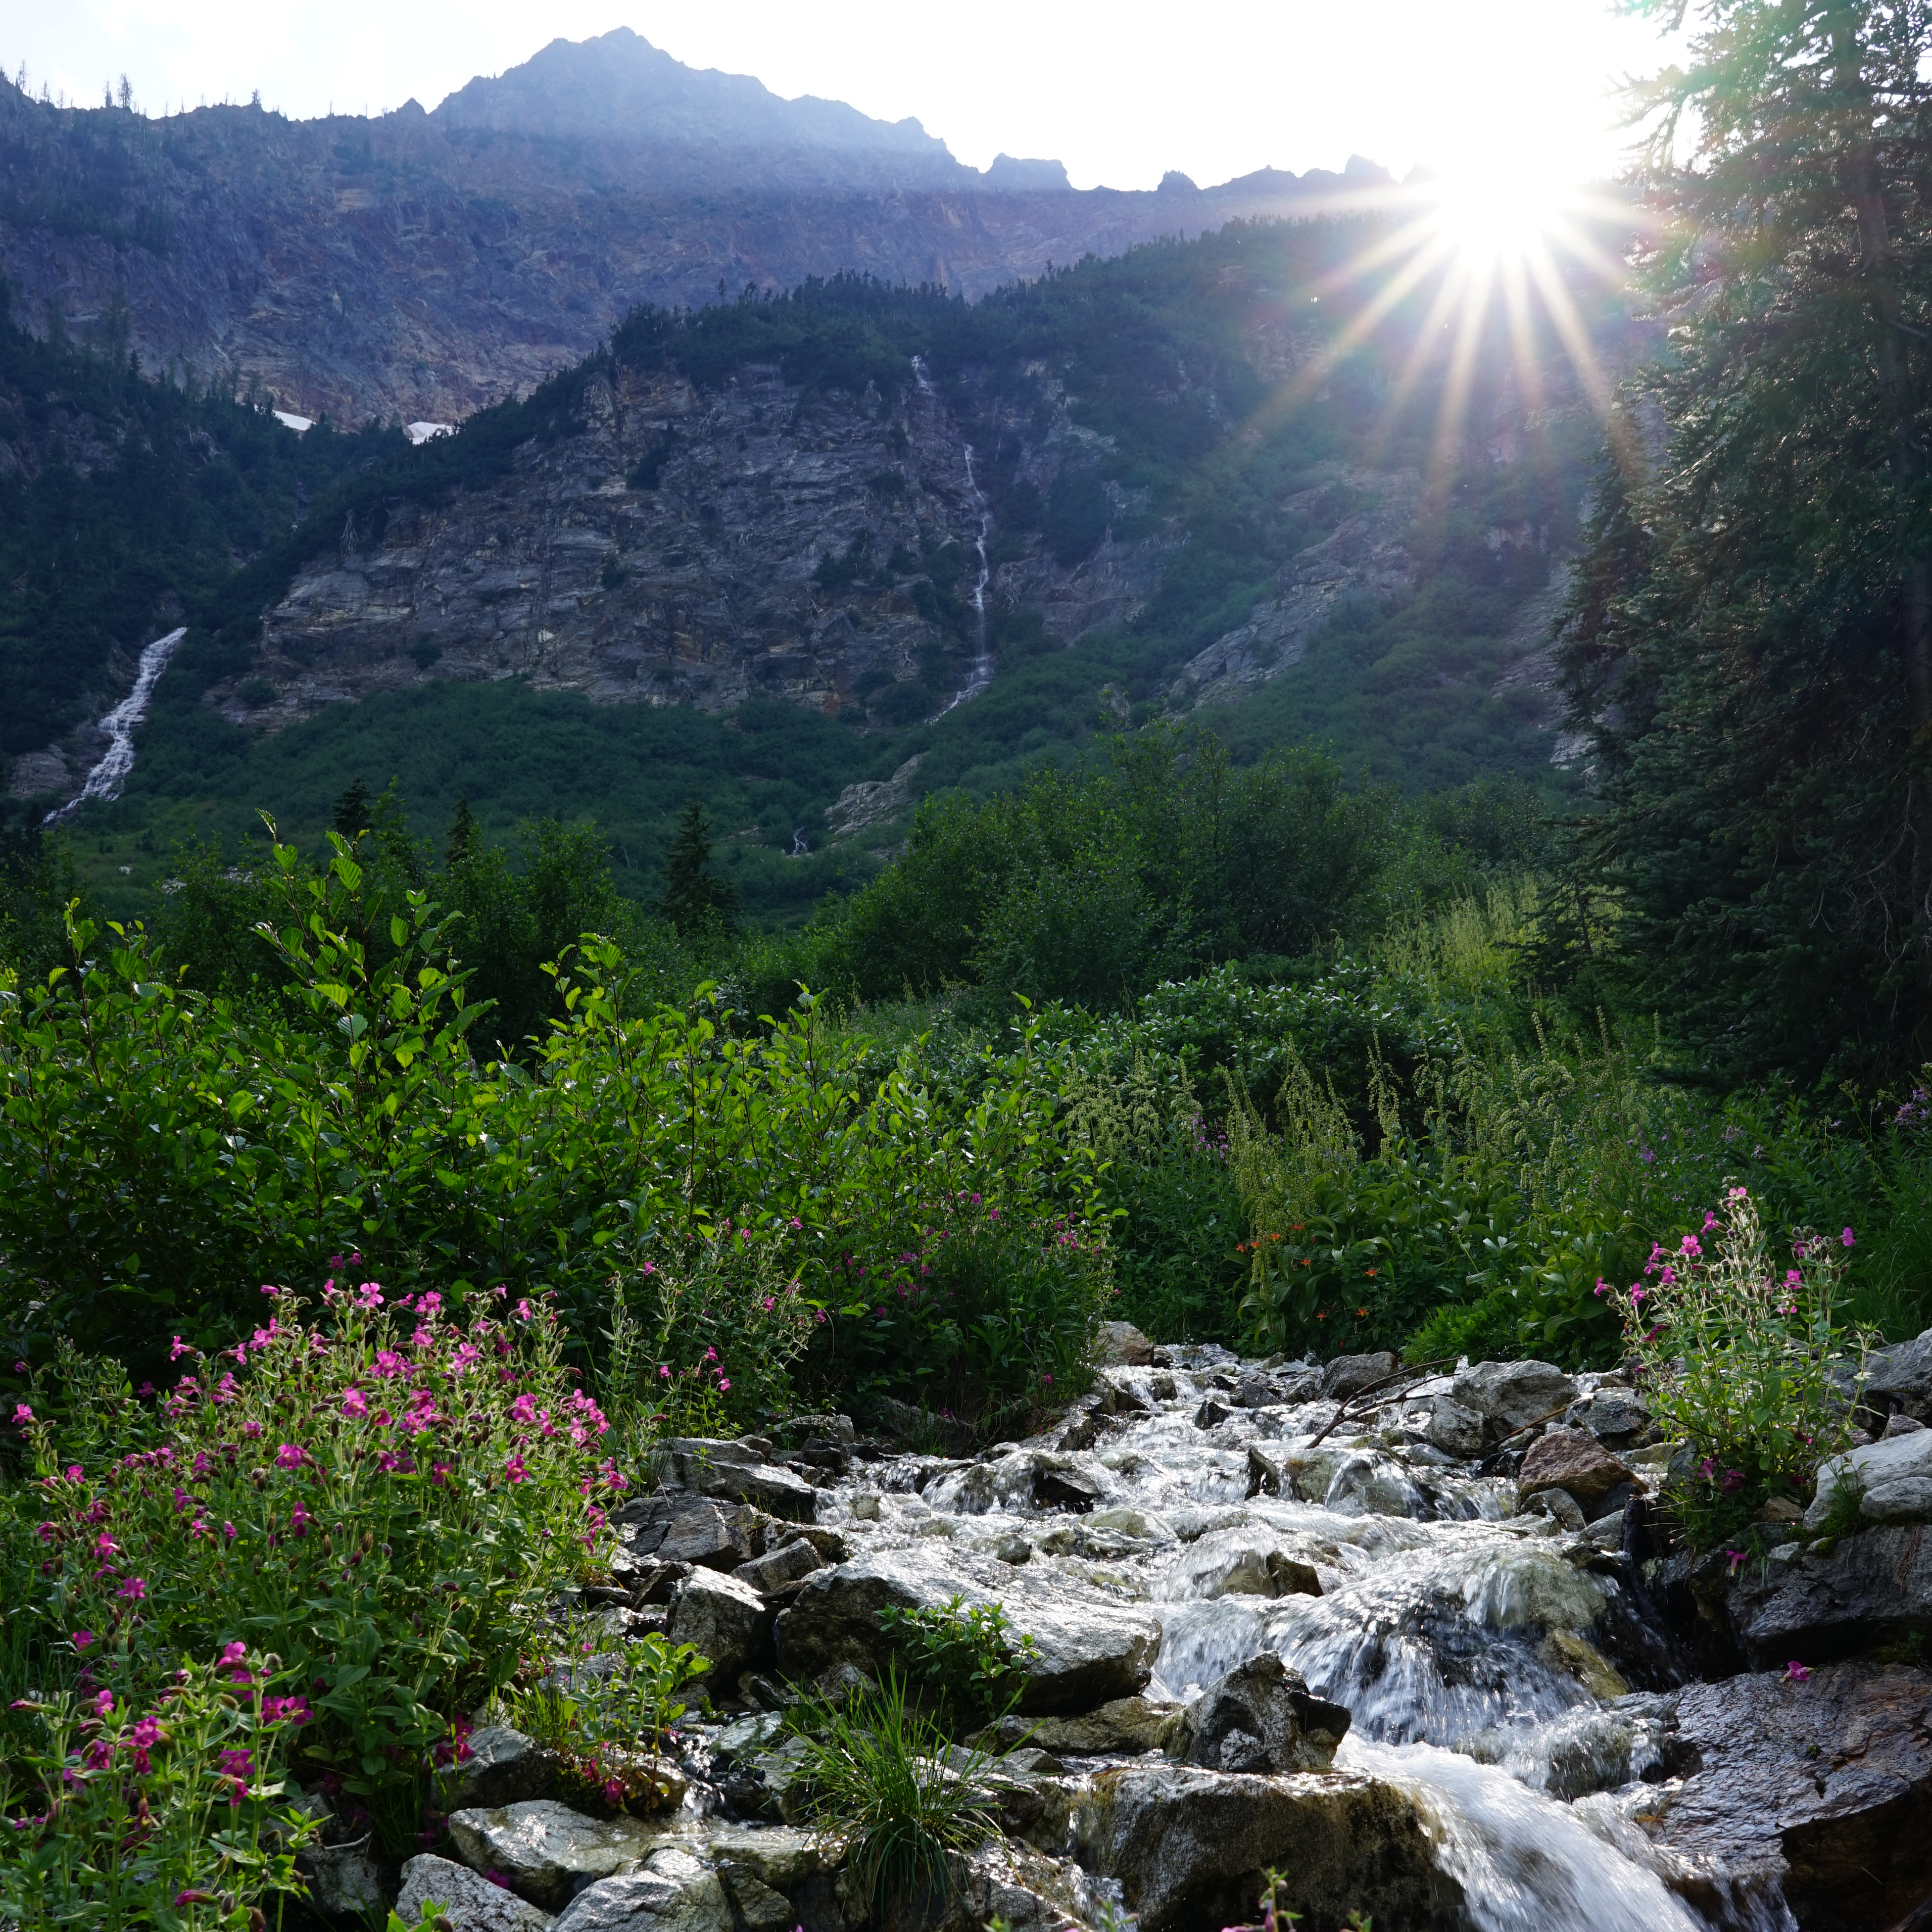 A mountain stream filled with boulders and white water is framed by flowering plants.